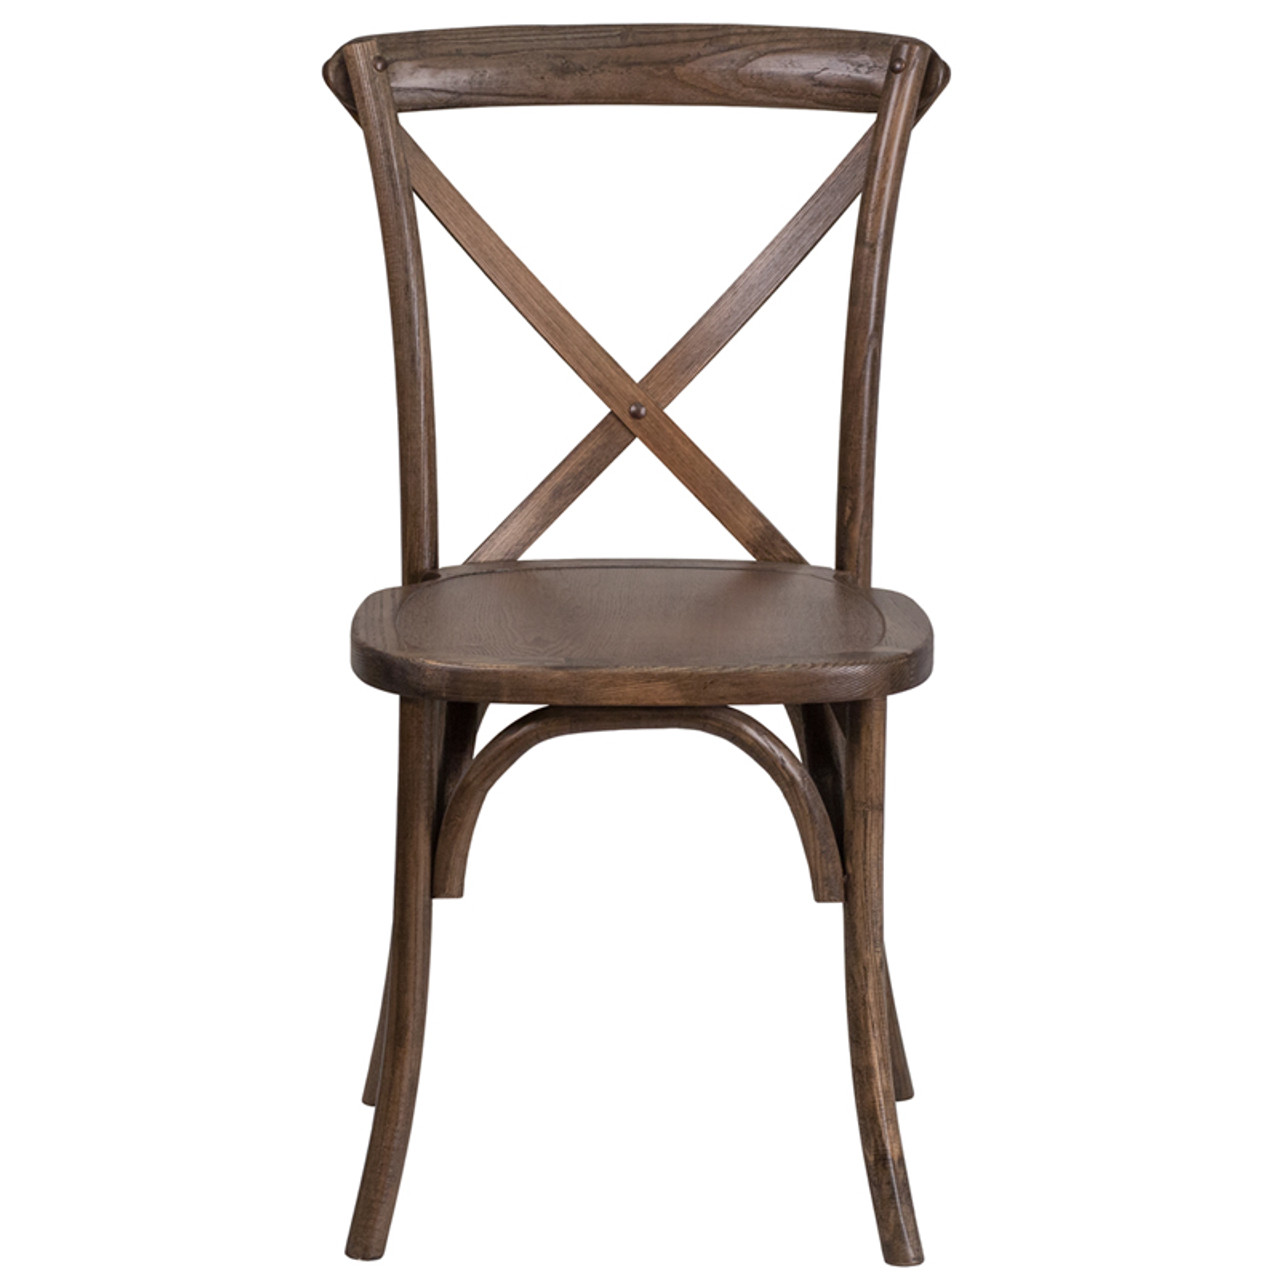 Astounding Hercules Series Wood Cross Back Chair 400Lb Capacity Optional Tie Back Cushion Gmtry Best Dining Table And Chair Ideas Images Gmtryco